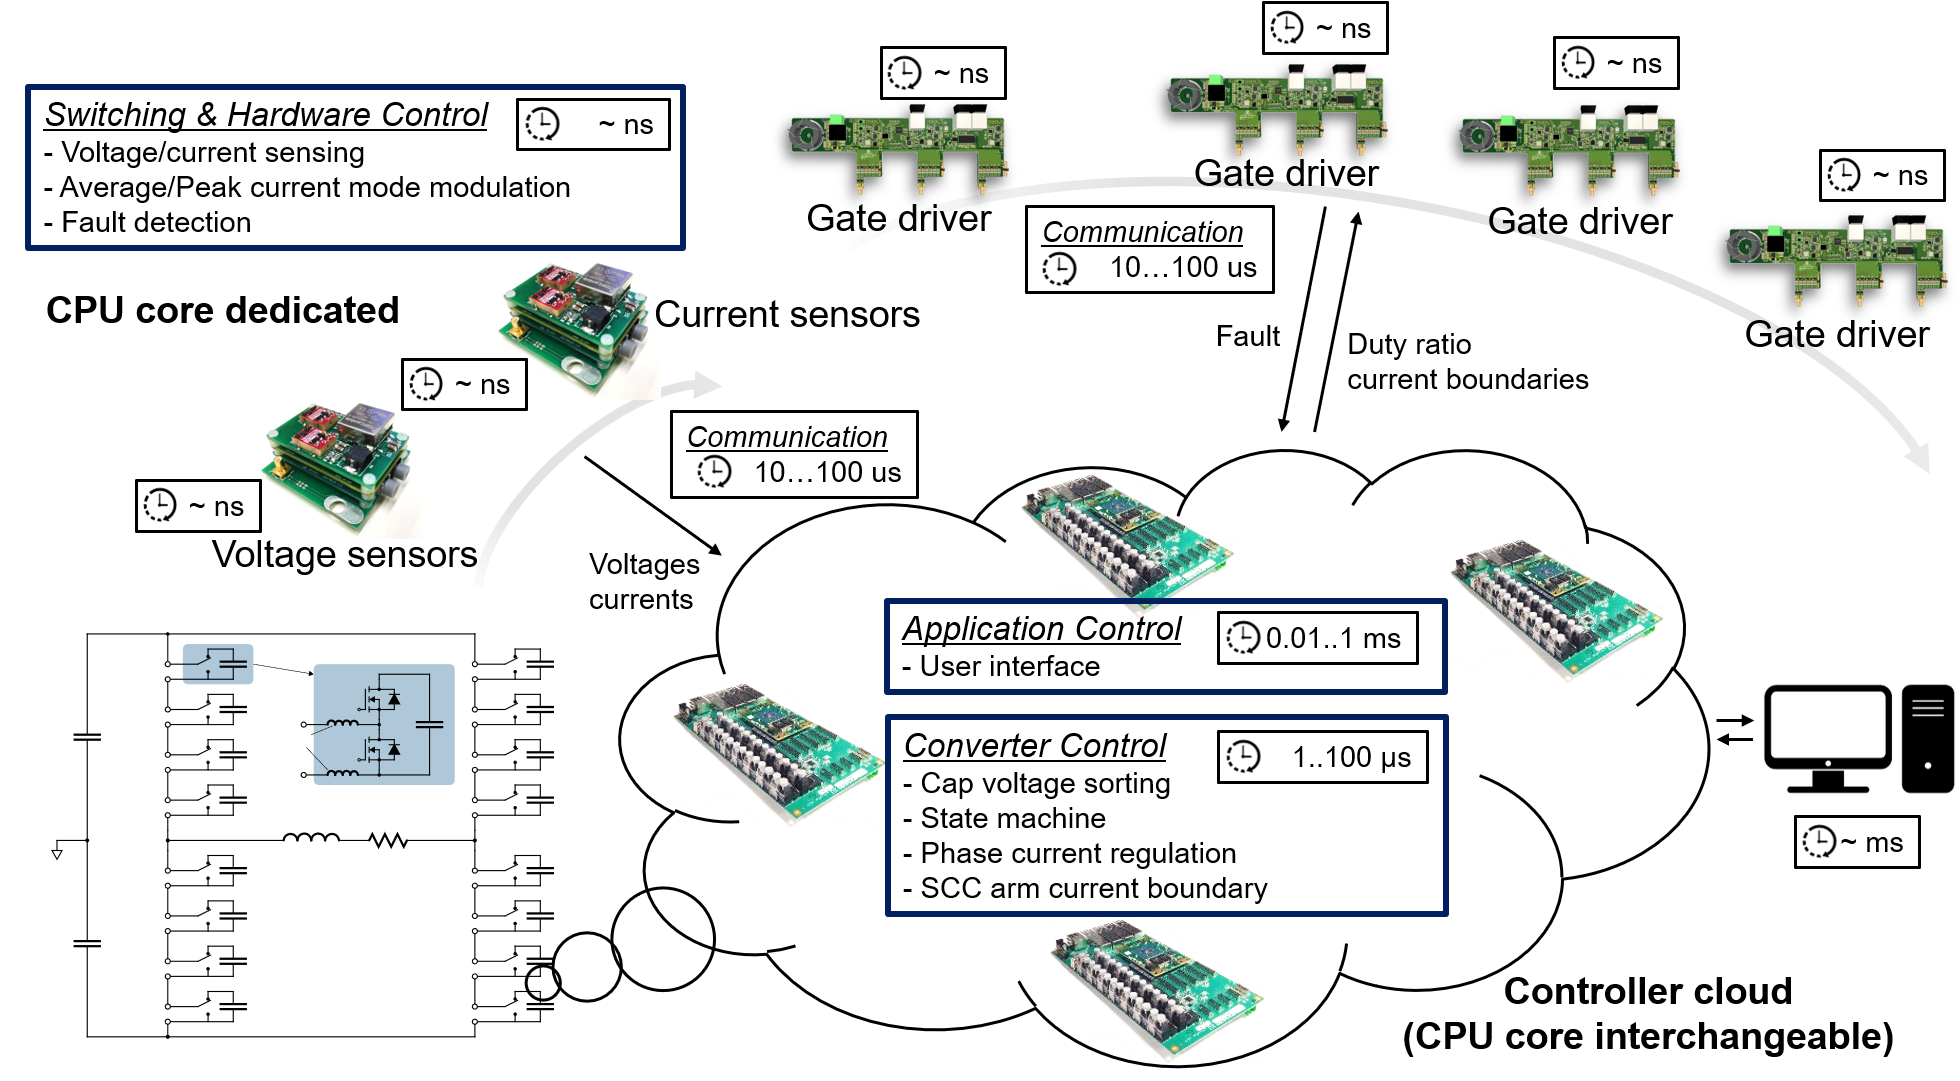 Distributed controller